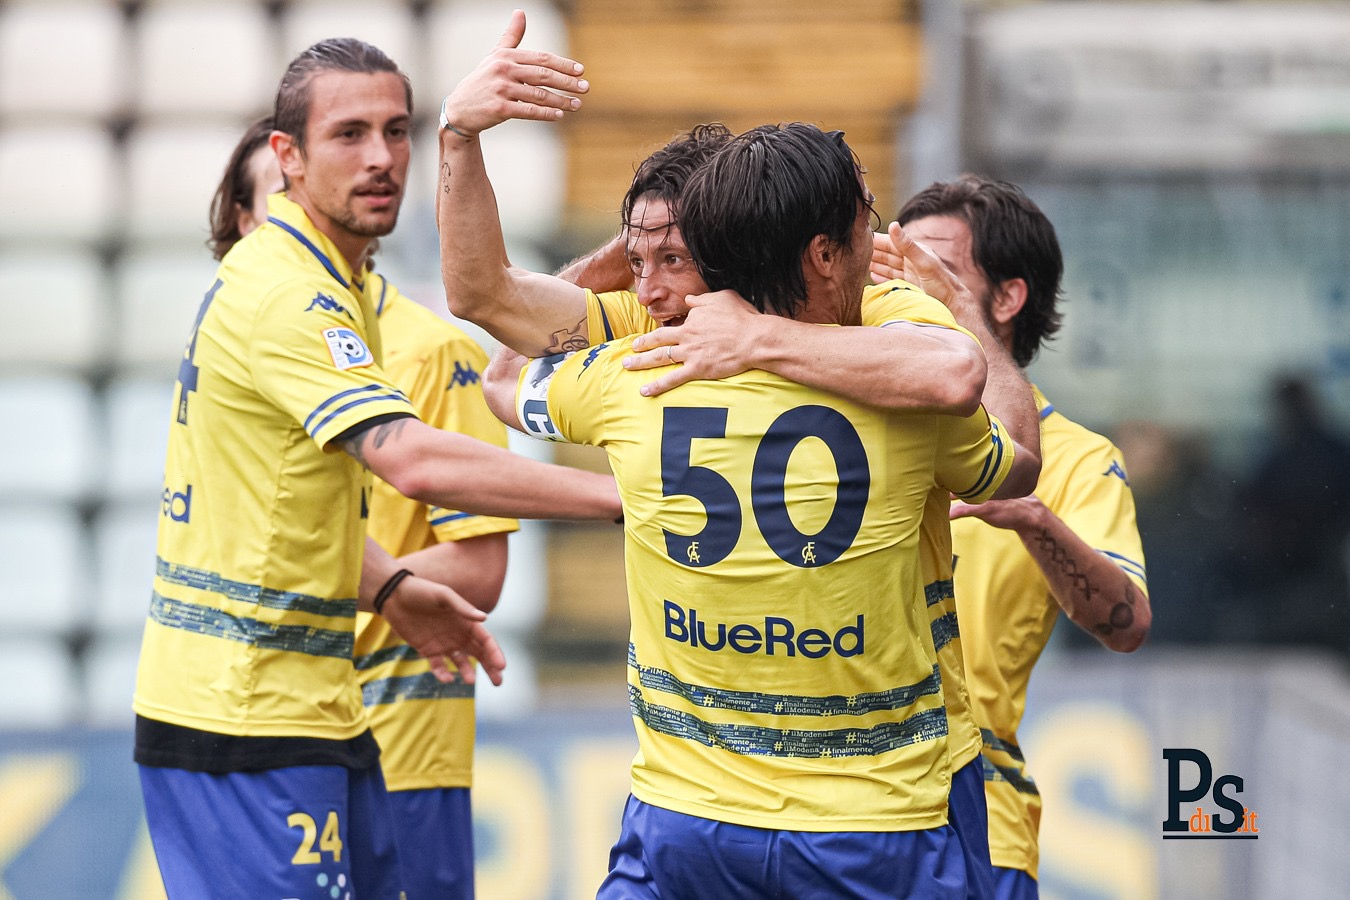 Playoff Serie D, highlights Modena-Reggio Audace 4-1